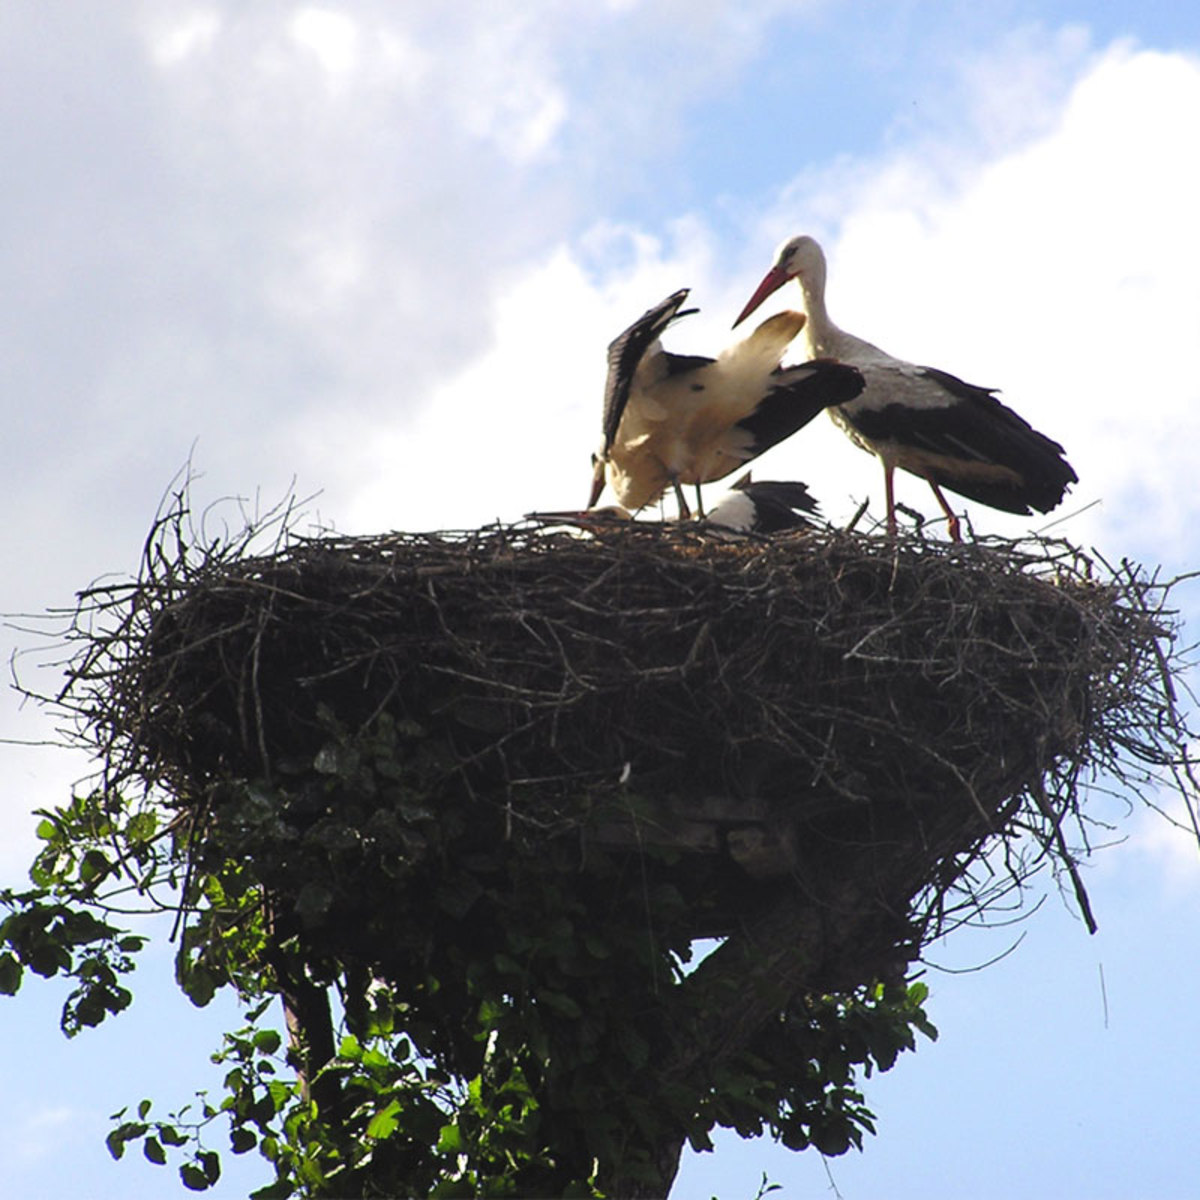 How do birds learn to build their nests?